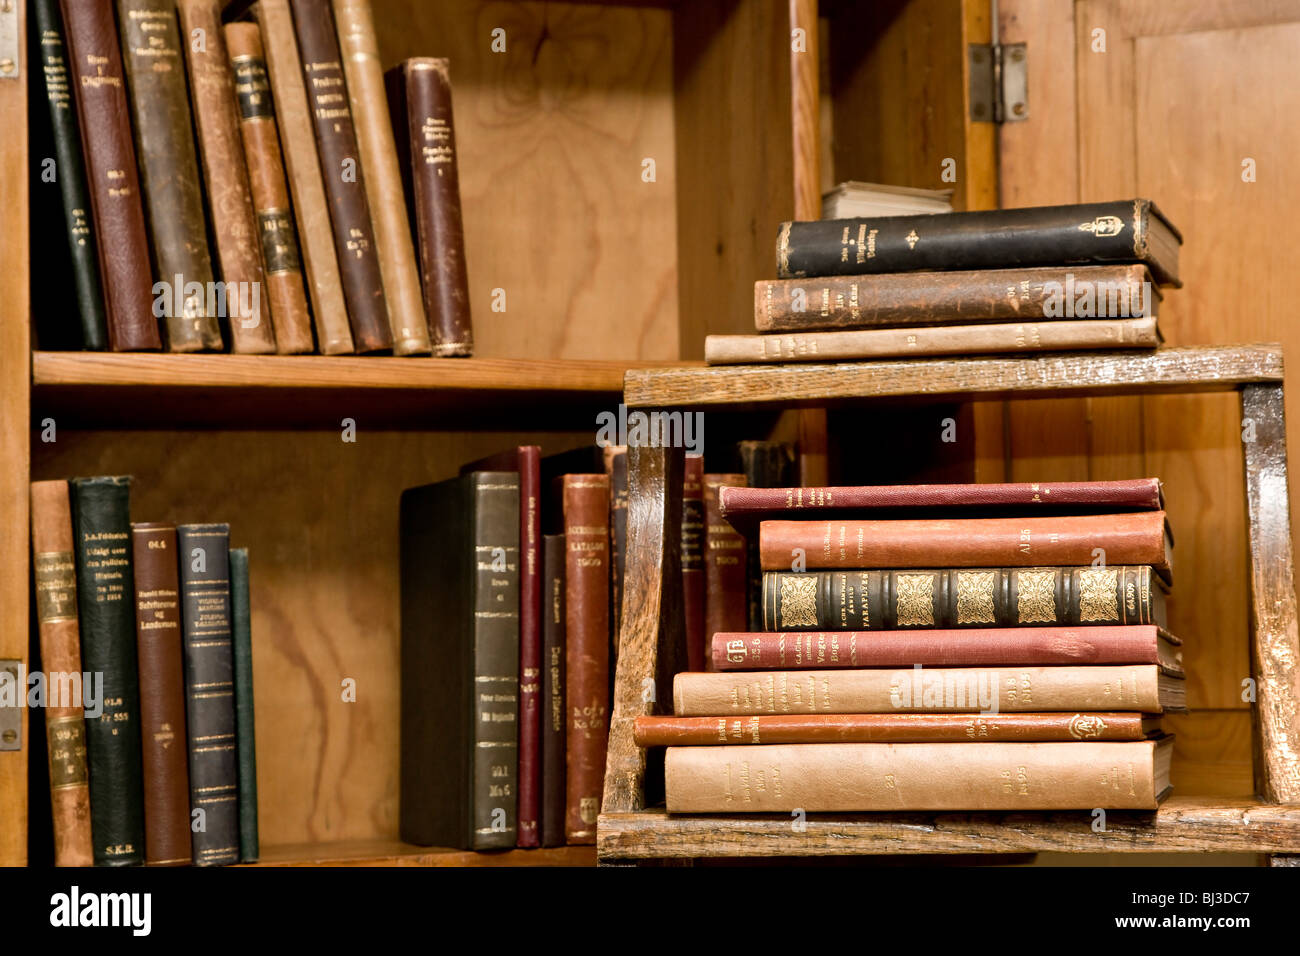 Altes Bücherregal Alte Bücher In Einem Regal Stockfoto Bild 28350567 Alamy